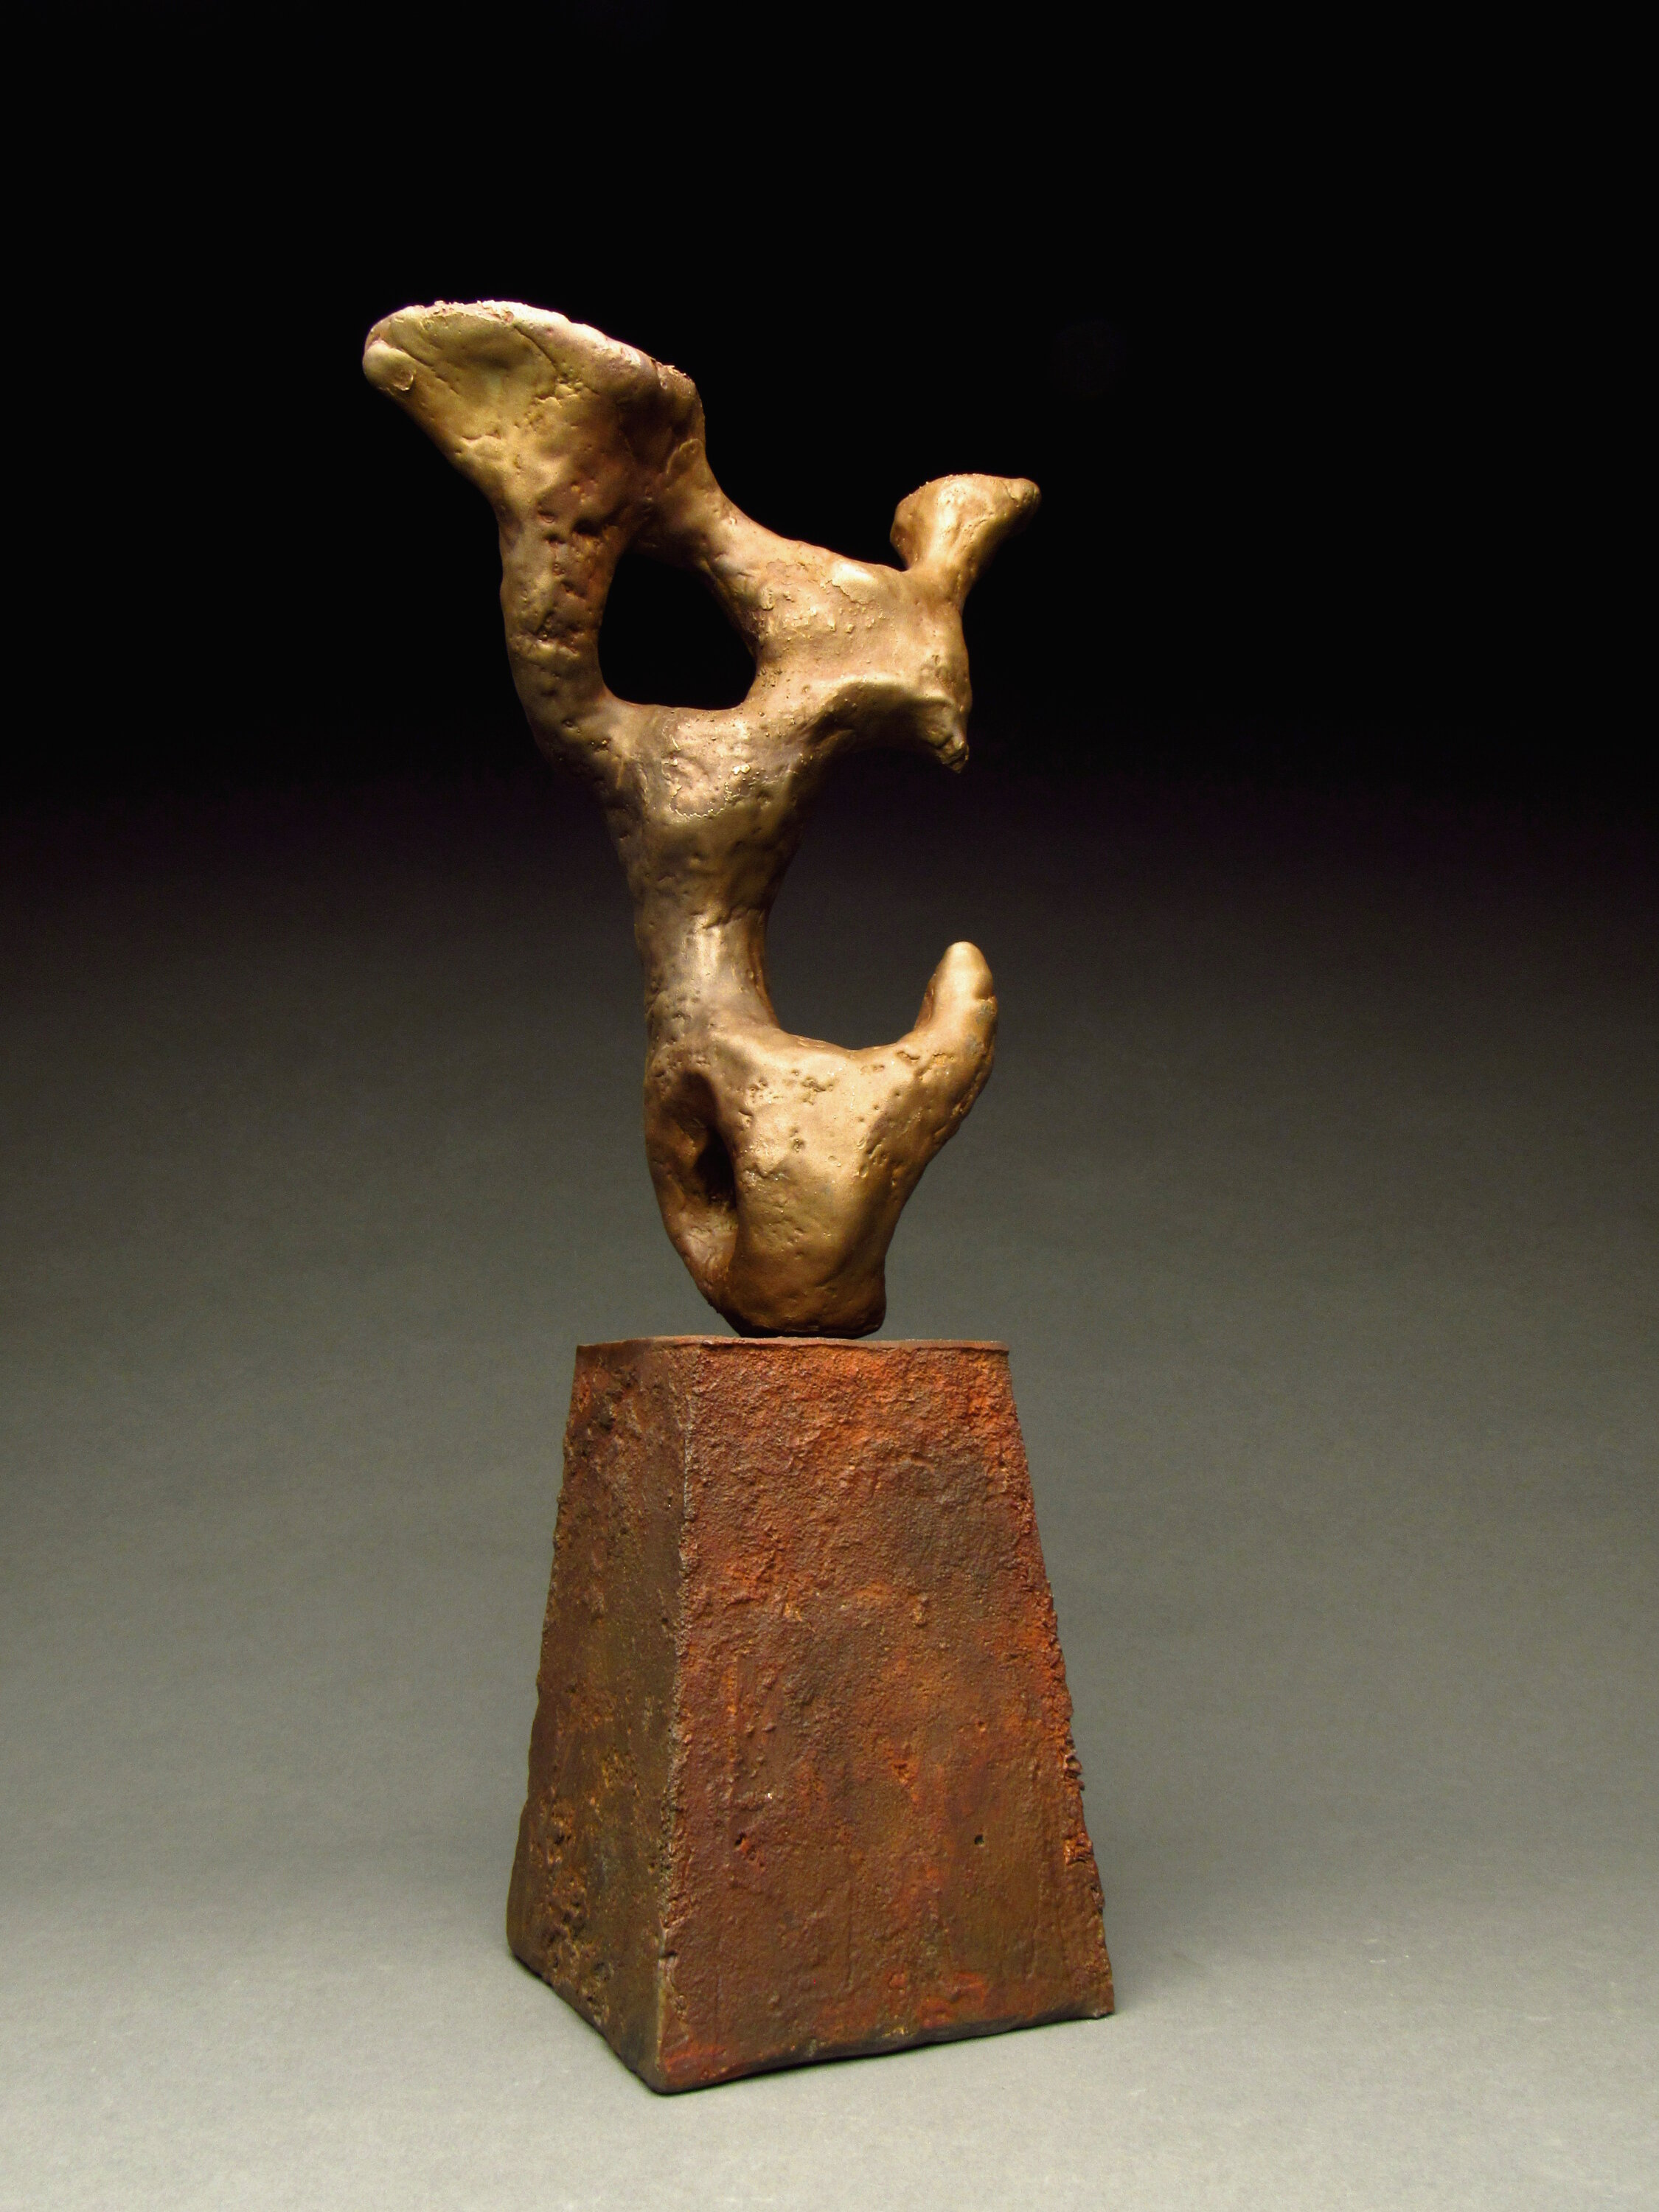 Abstract form 3. Bronze, Iron. 2016